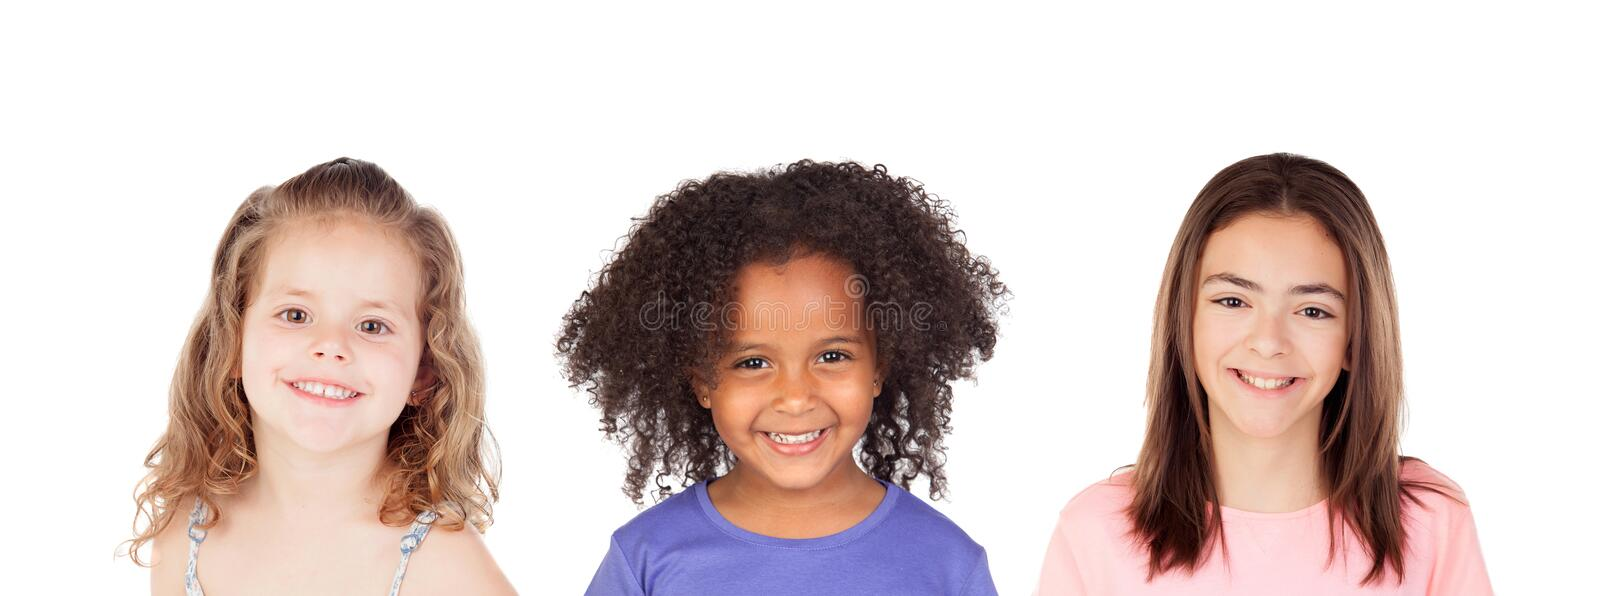 Three smiling children stock photo